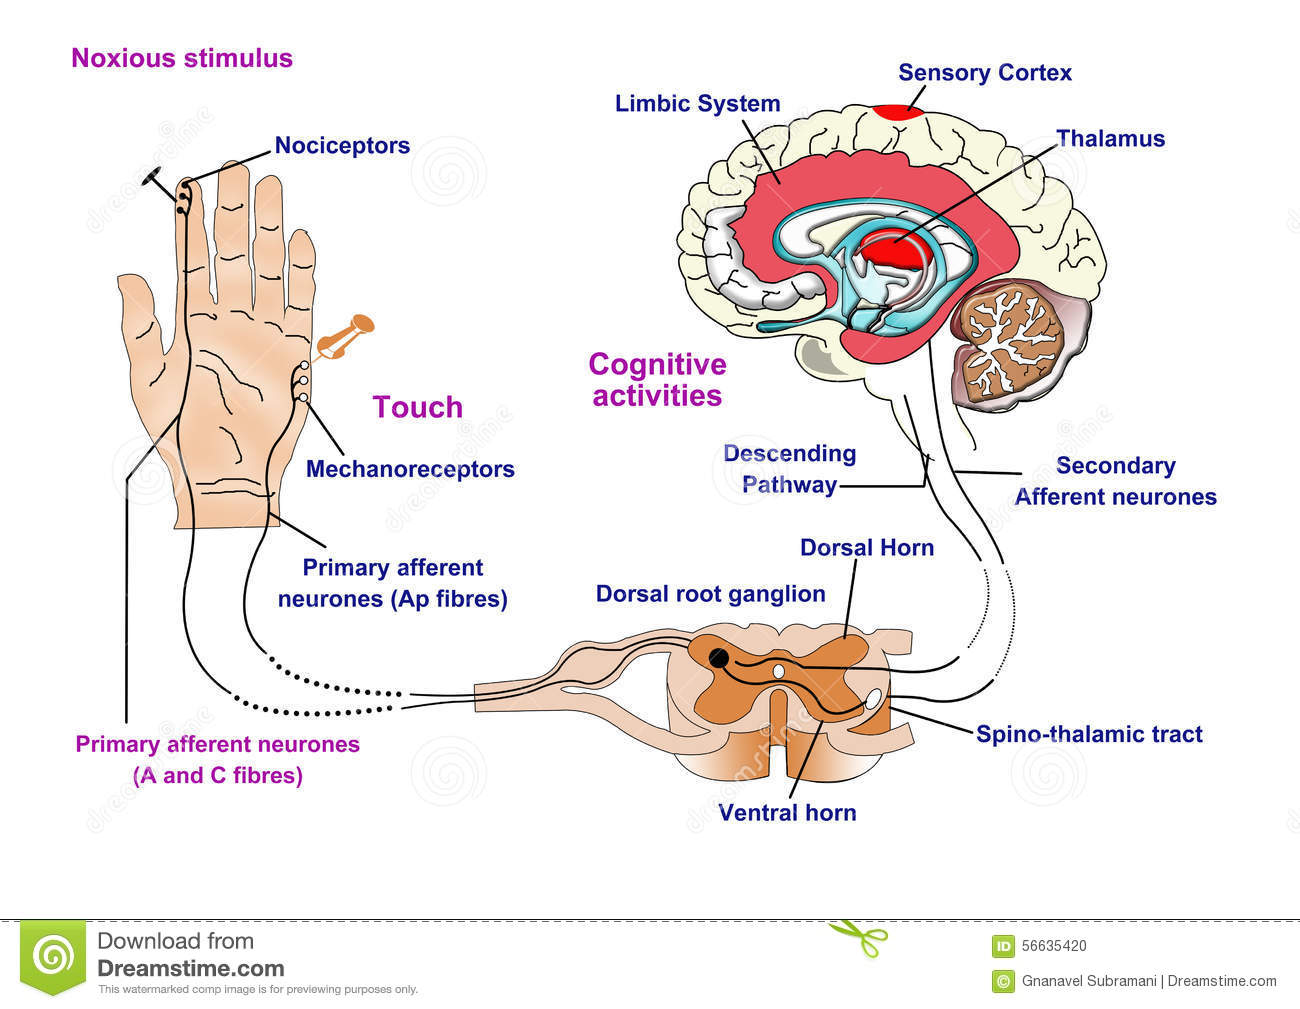 hight resolution of noxious and pain receptors in skin and the nerve pathway to the brain via the spinal cord and thalamus